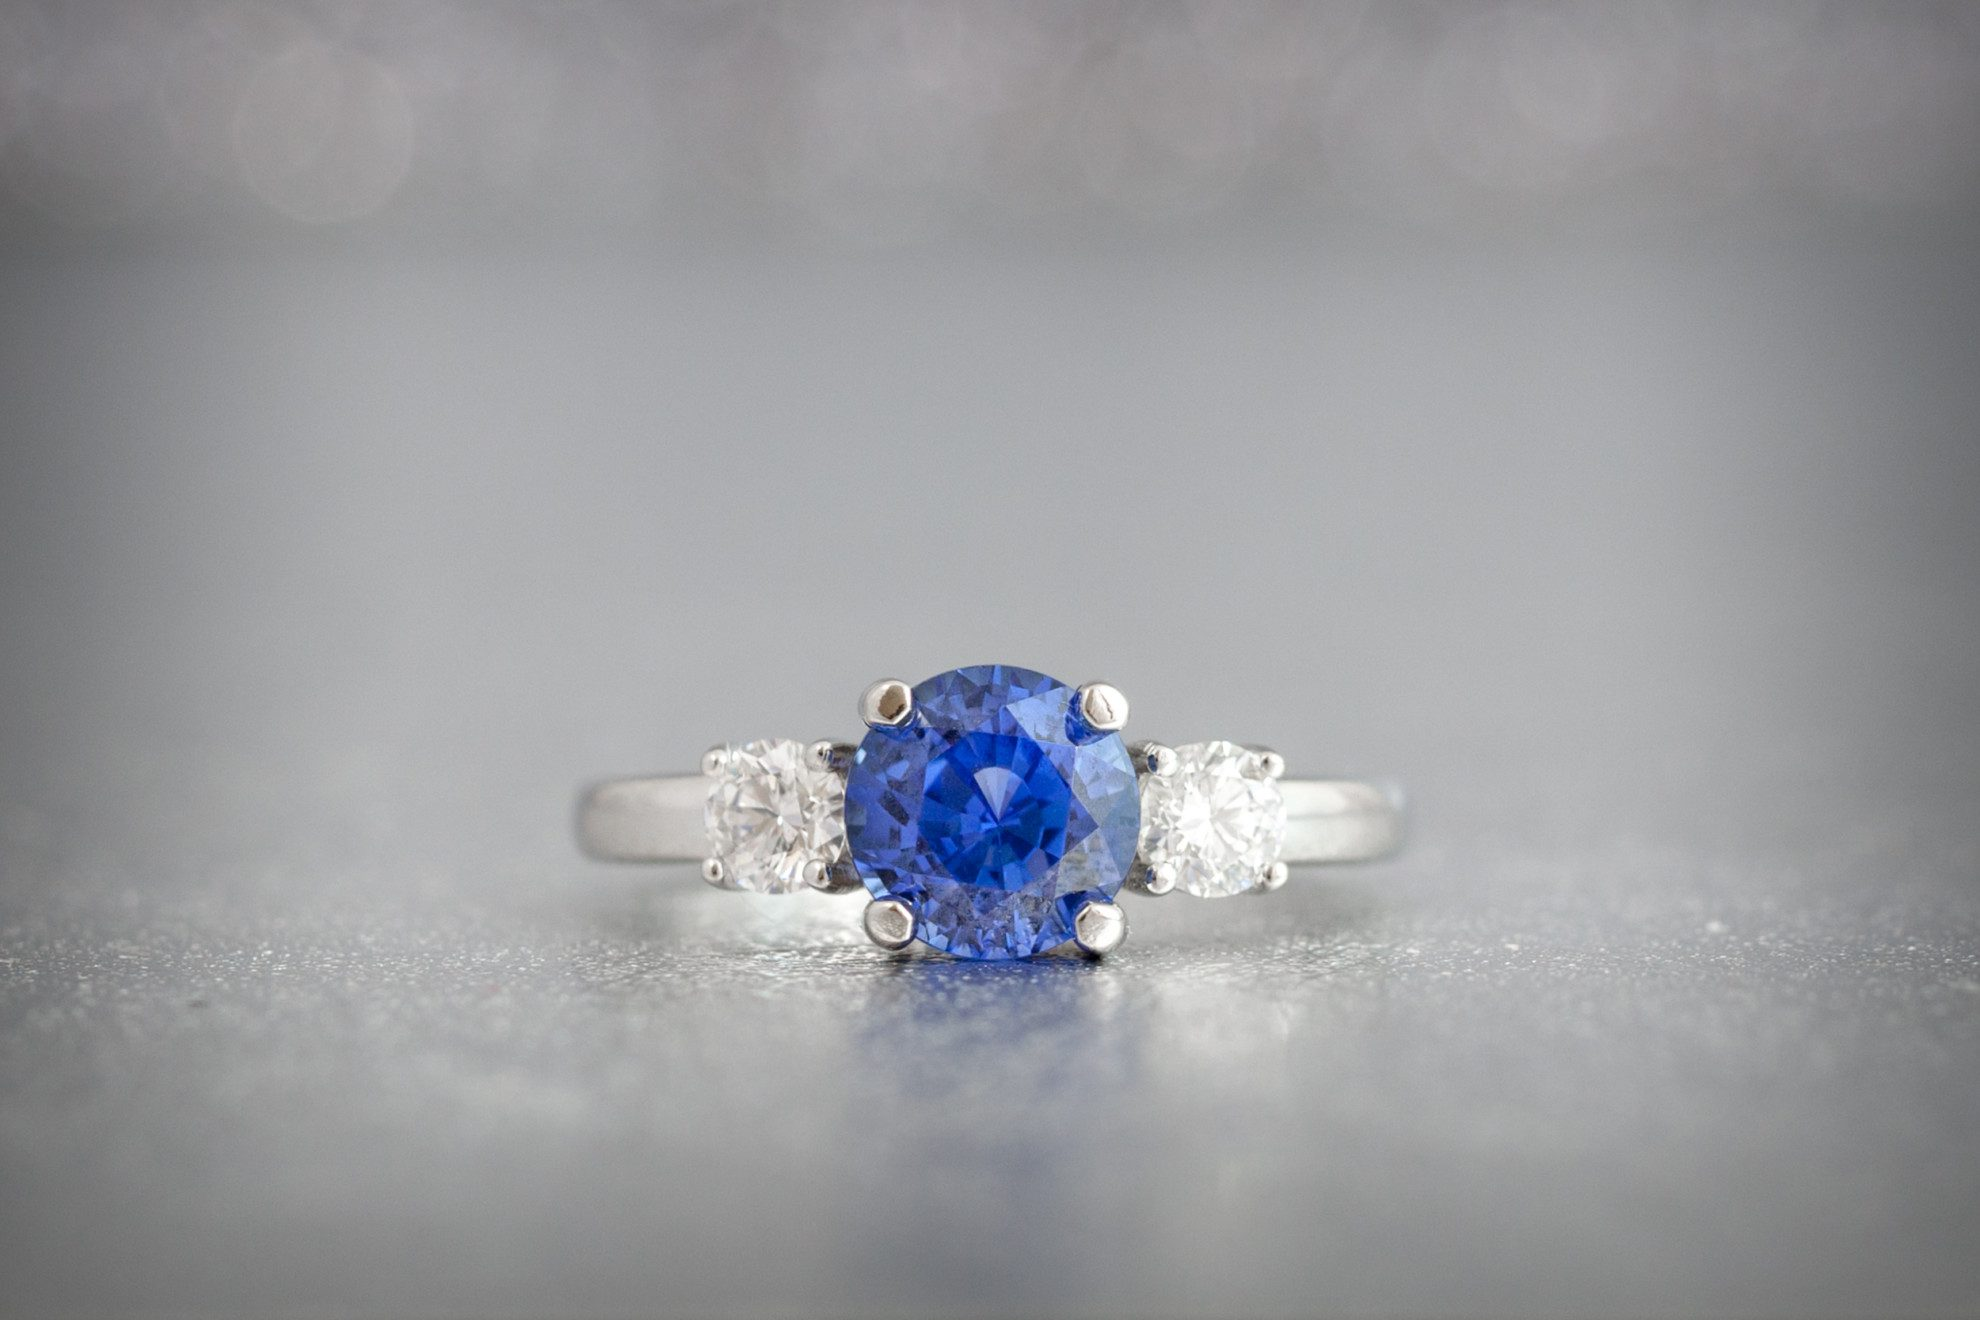 blue rose ring hzyh listing emerald cut il gold sapphire diamond fullxfull rings engagement aqua